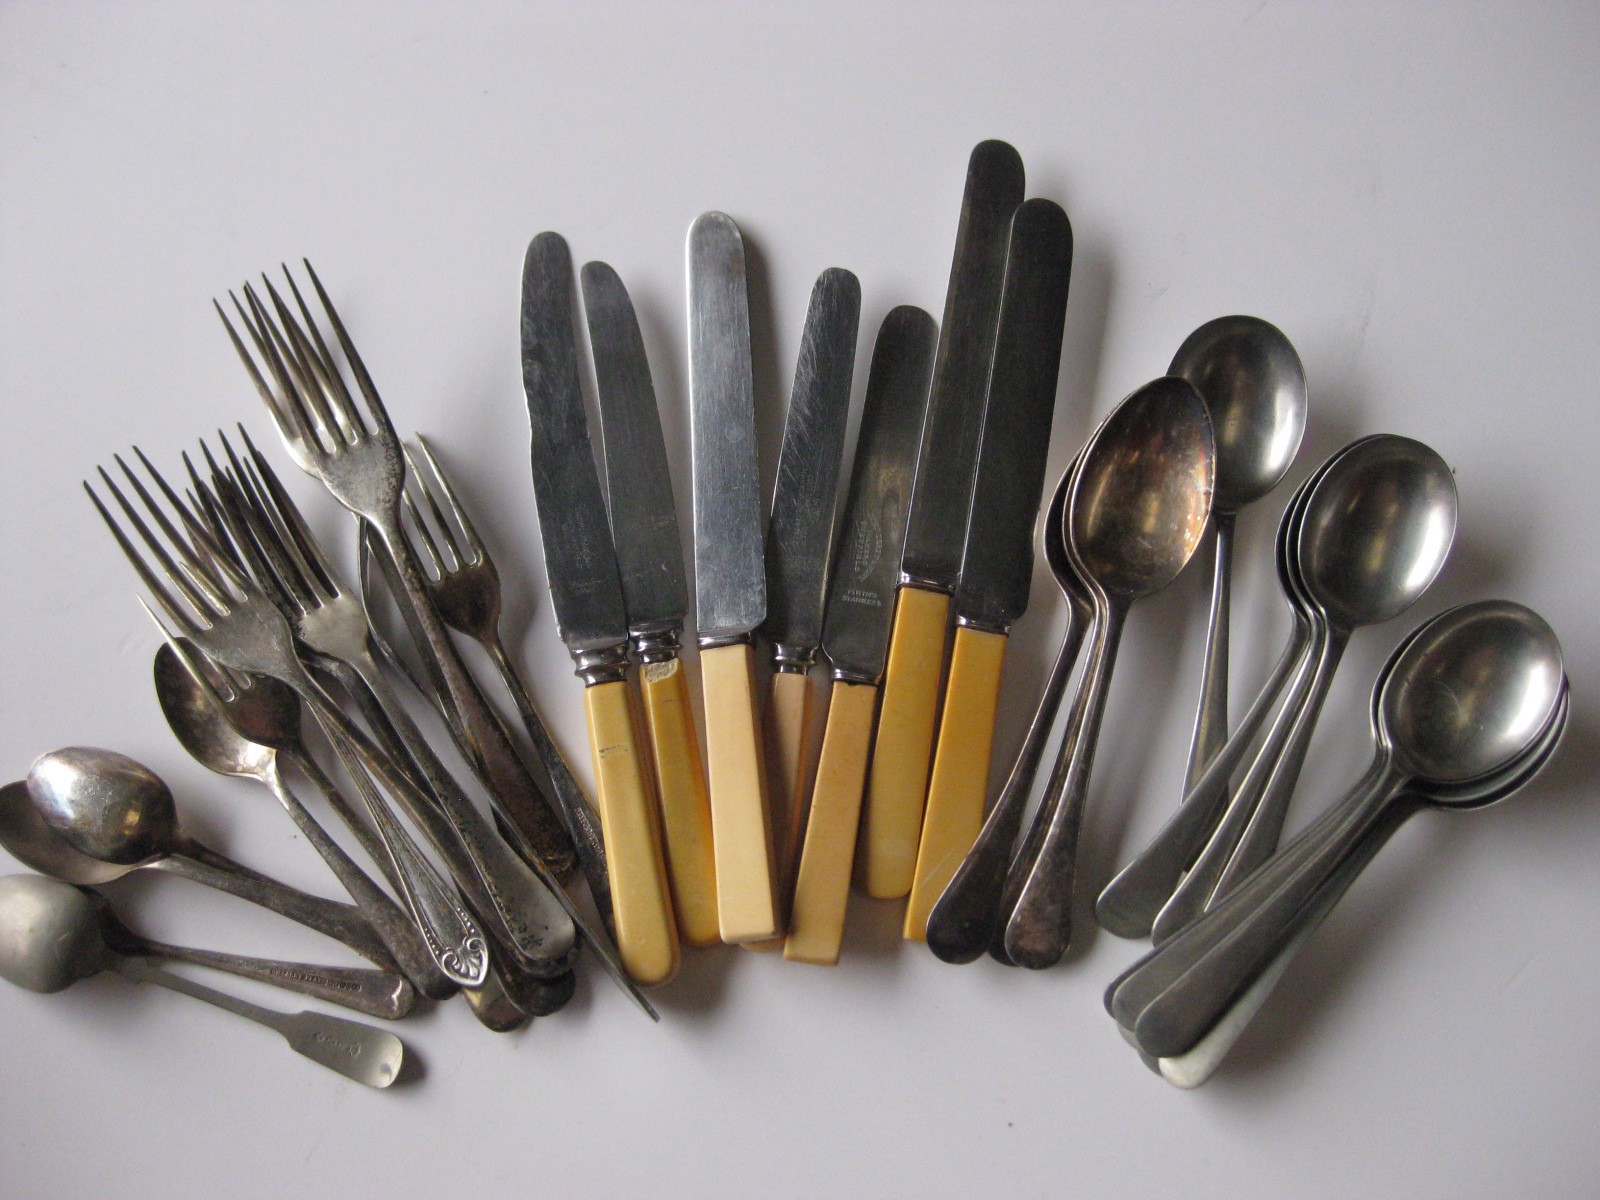 CUT0007 CUTLERY, Vintage Assorted $1.50